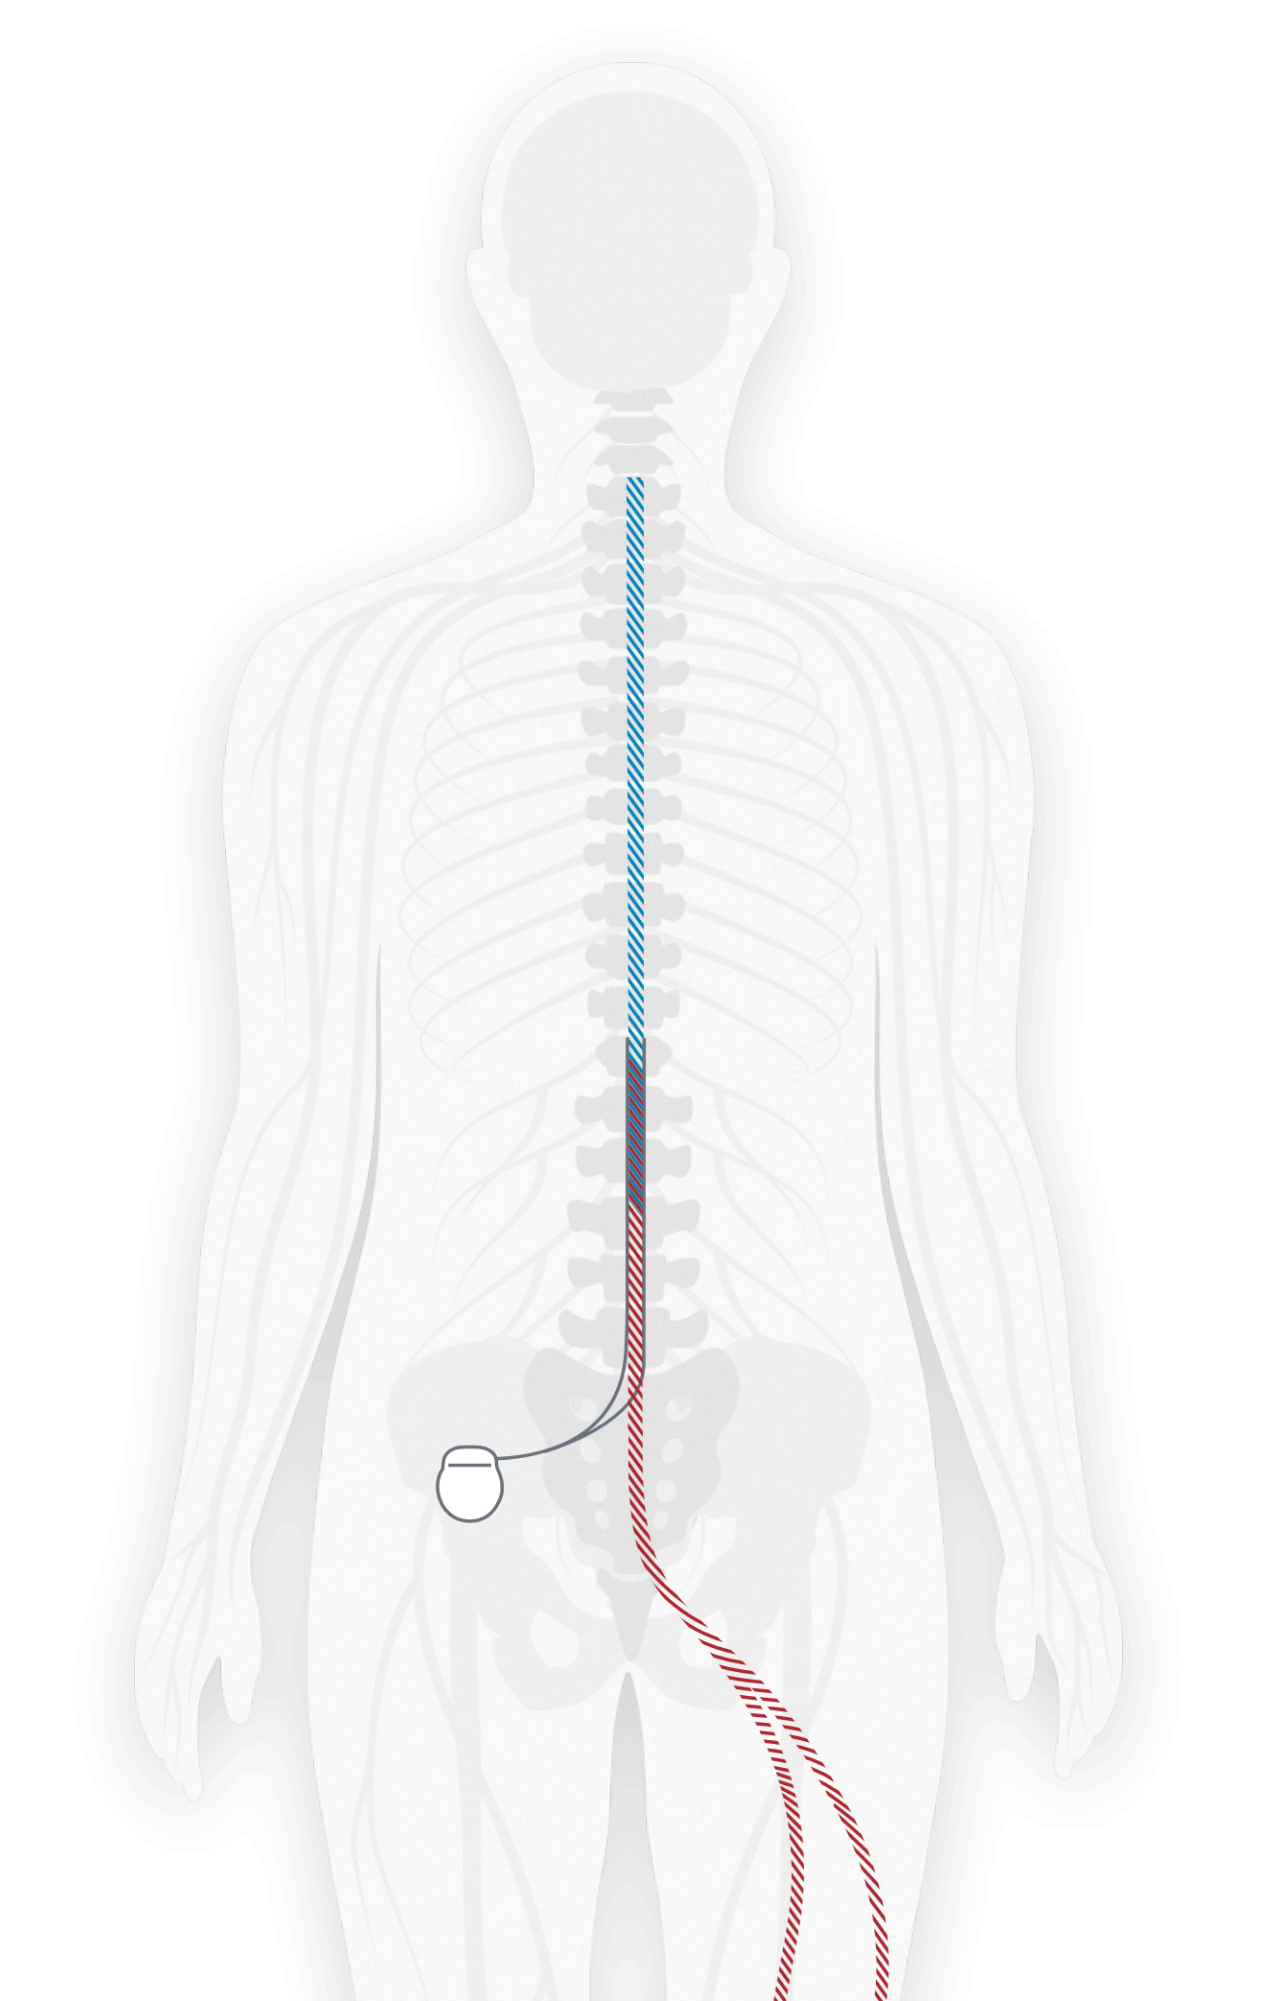 Diagram showing where a spinal cord stimulator is implanted and attached to nerves near the spine to send pulses to the nerves to relieve pain.